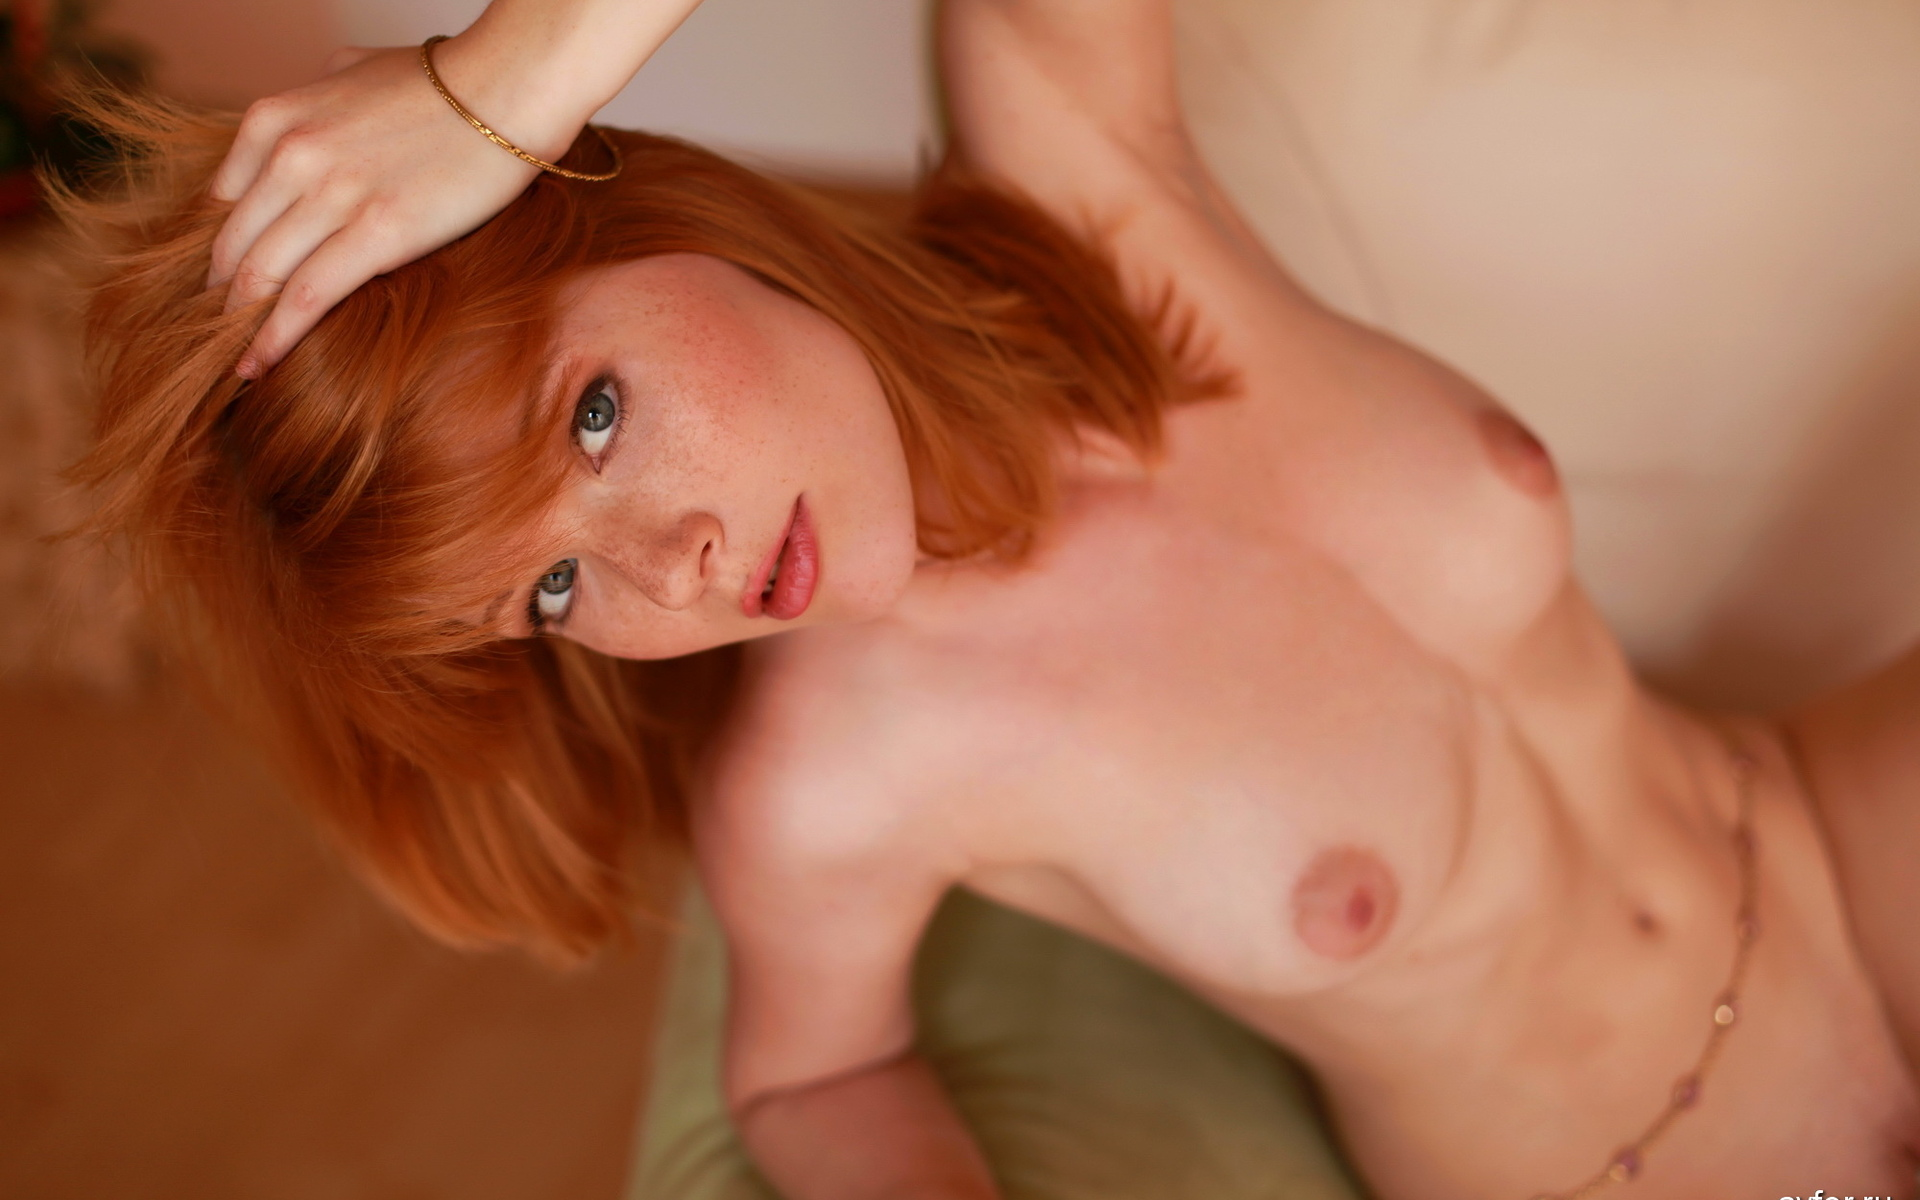 Shaved totally shaved nude redhead babe dolly little with open pussy